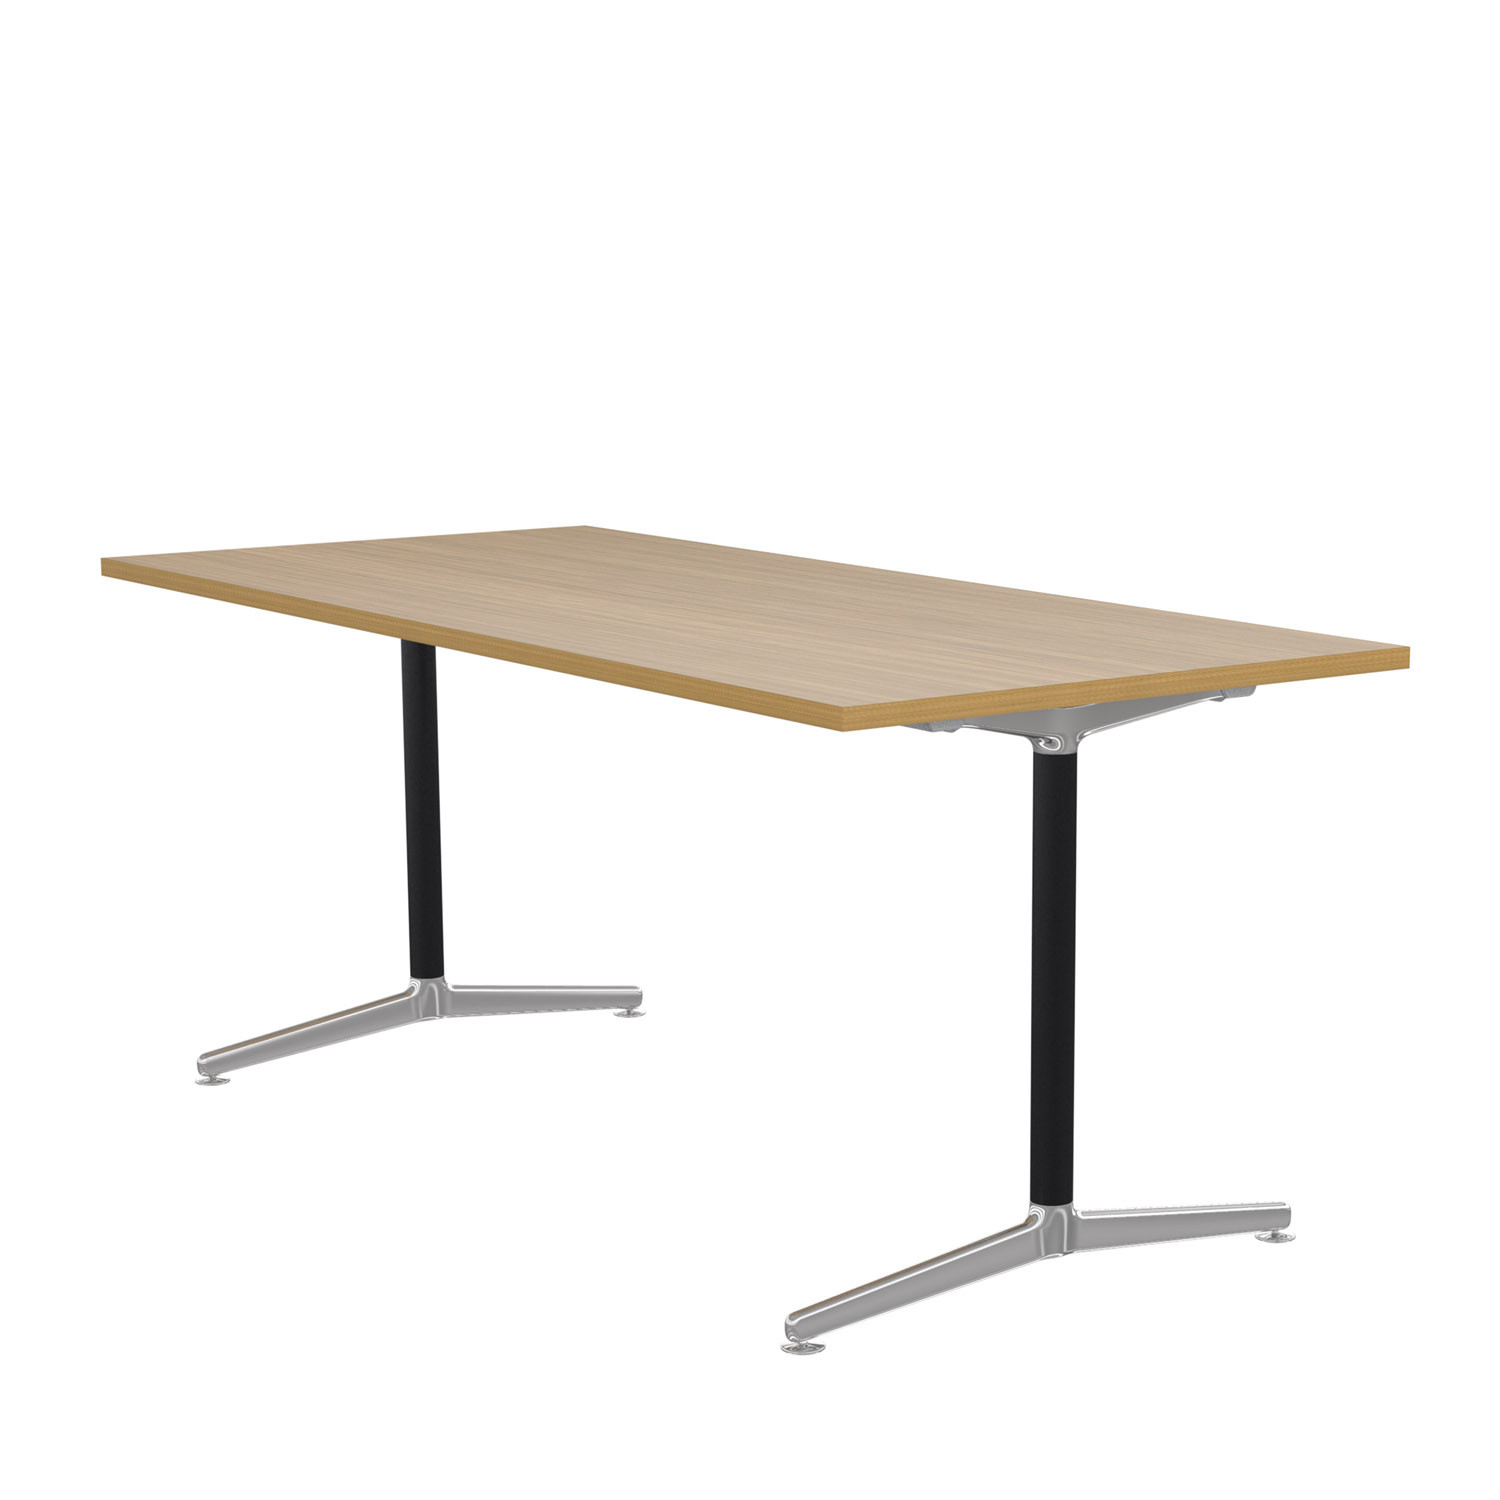 Ad-Lib Rectangular Meeting Table